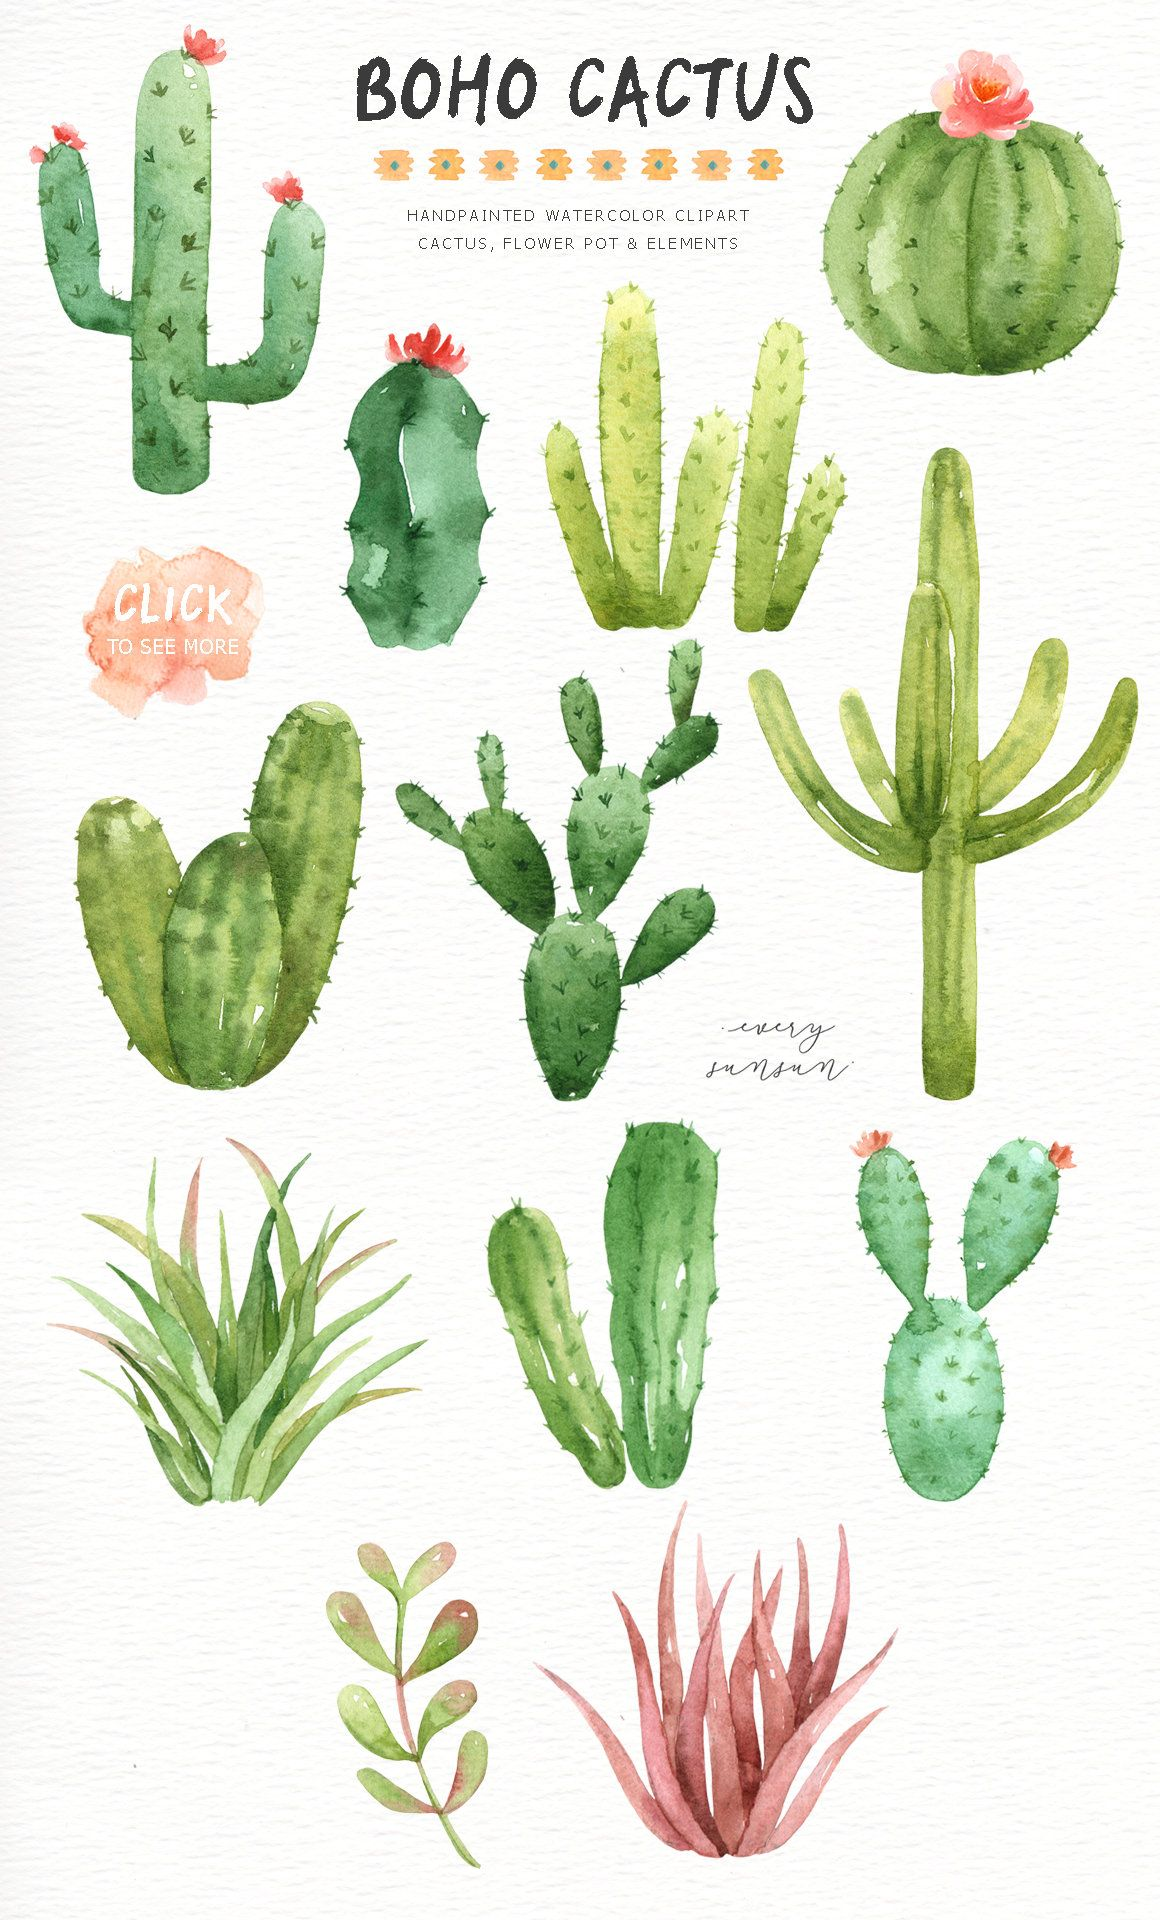 Photo of Boho Cactus Watercolor Cliparts, Boho Clipart, Botanical Plant, Tropical Clipart, Cactus Pack, Succulent Wedding Invitation, Cactus Wall Art